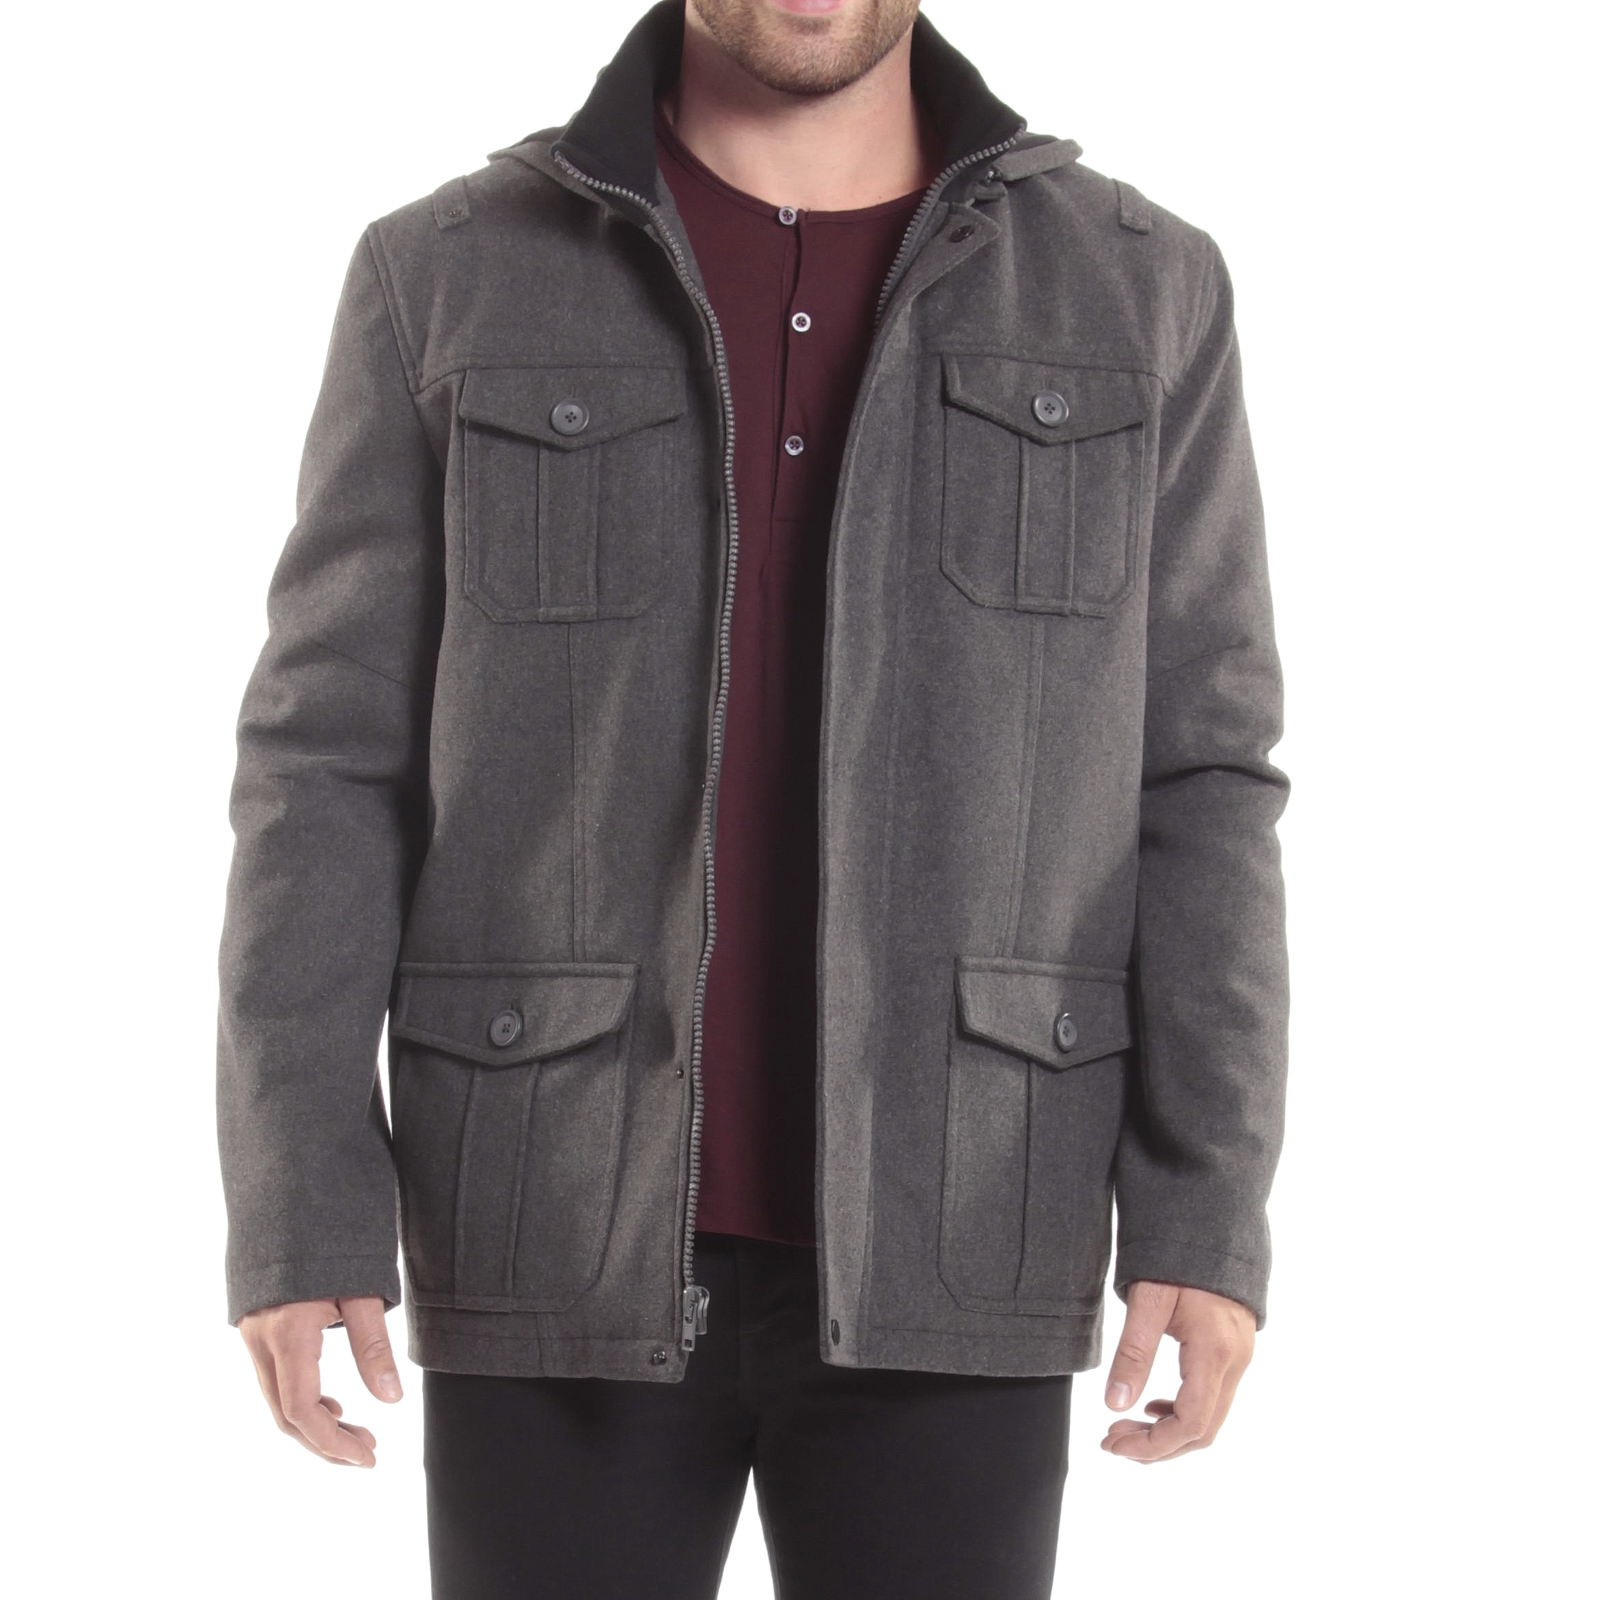 Alpine-Swiss-Noah-Mens-Wool-Coat-Parka-with-Removable-Hood-Jacket-Cargo-Pockets thumbnail 34